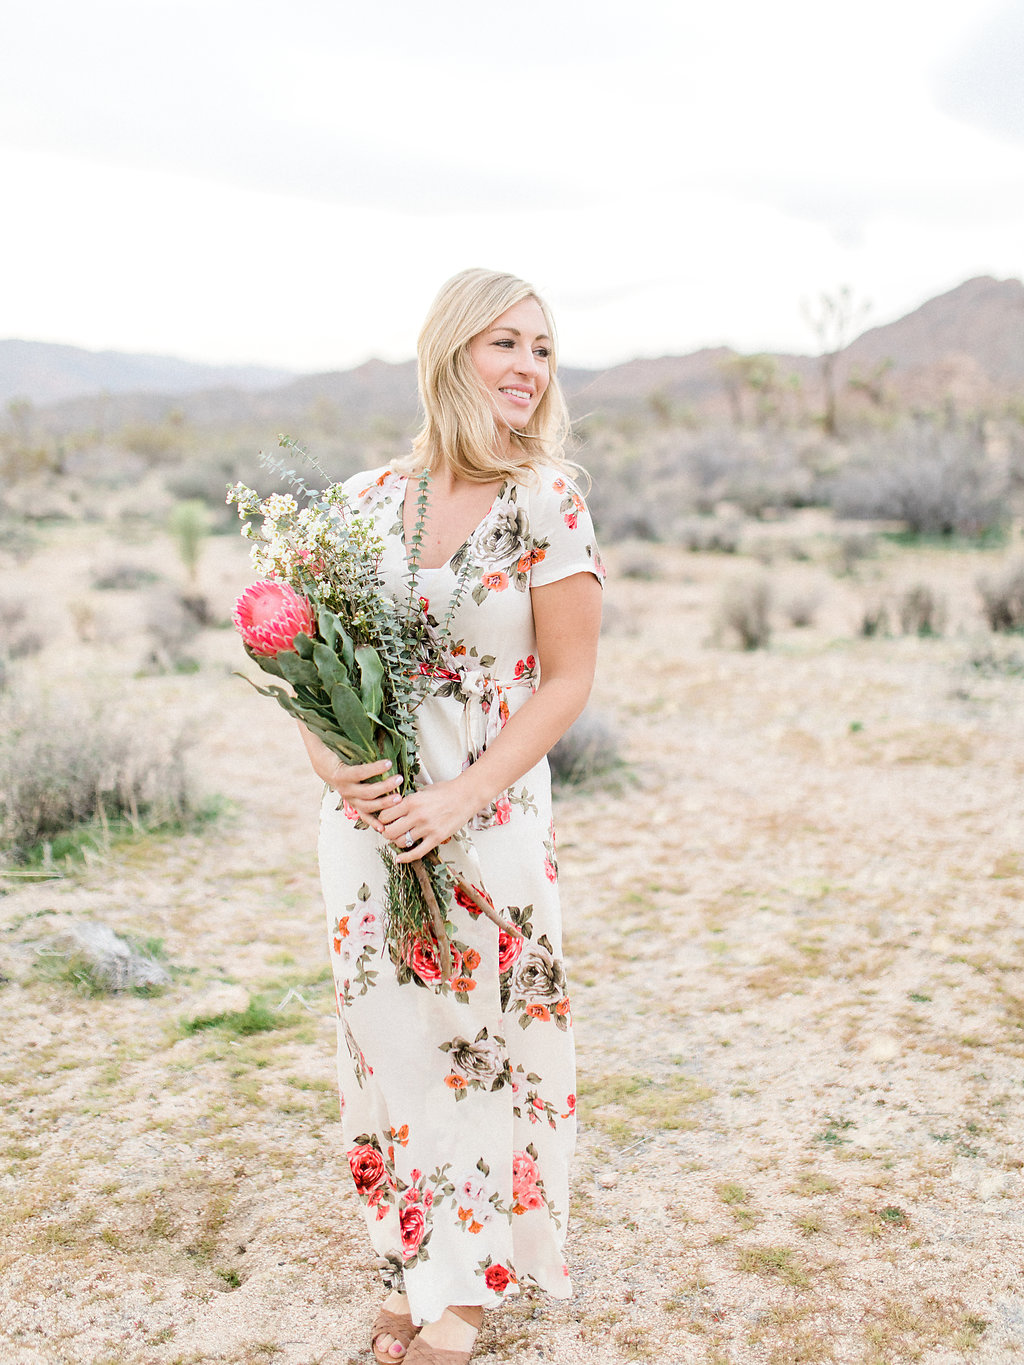 Joshua Tree Engagement Session | What to Wear for Pictures | Southern California Wedding Photographer | Mastin Labs Fuji Film | Fine Art Photographer | Desert Shoot | What to wear for her.jpg